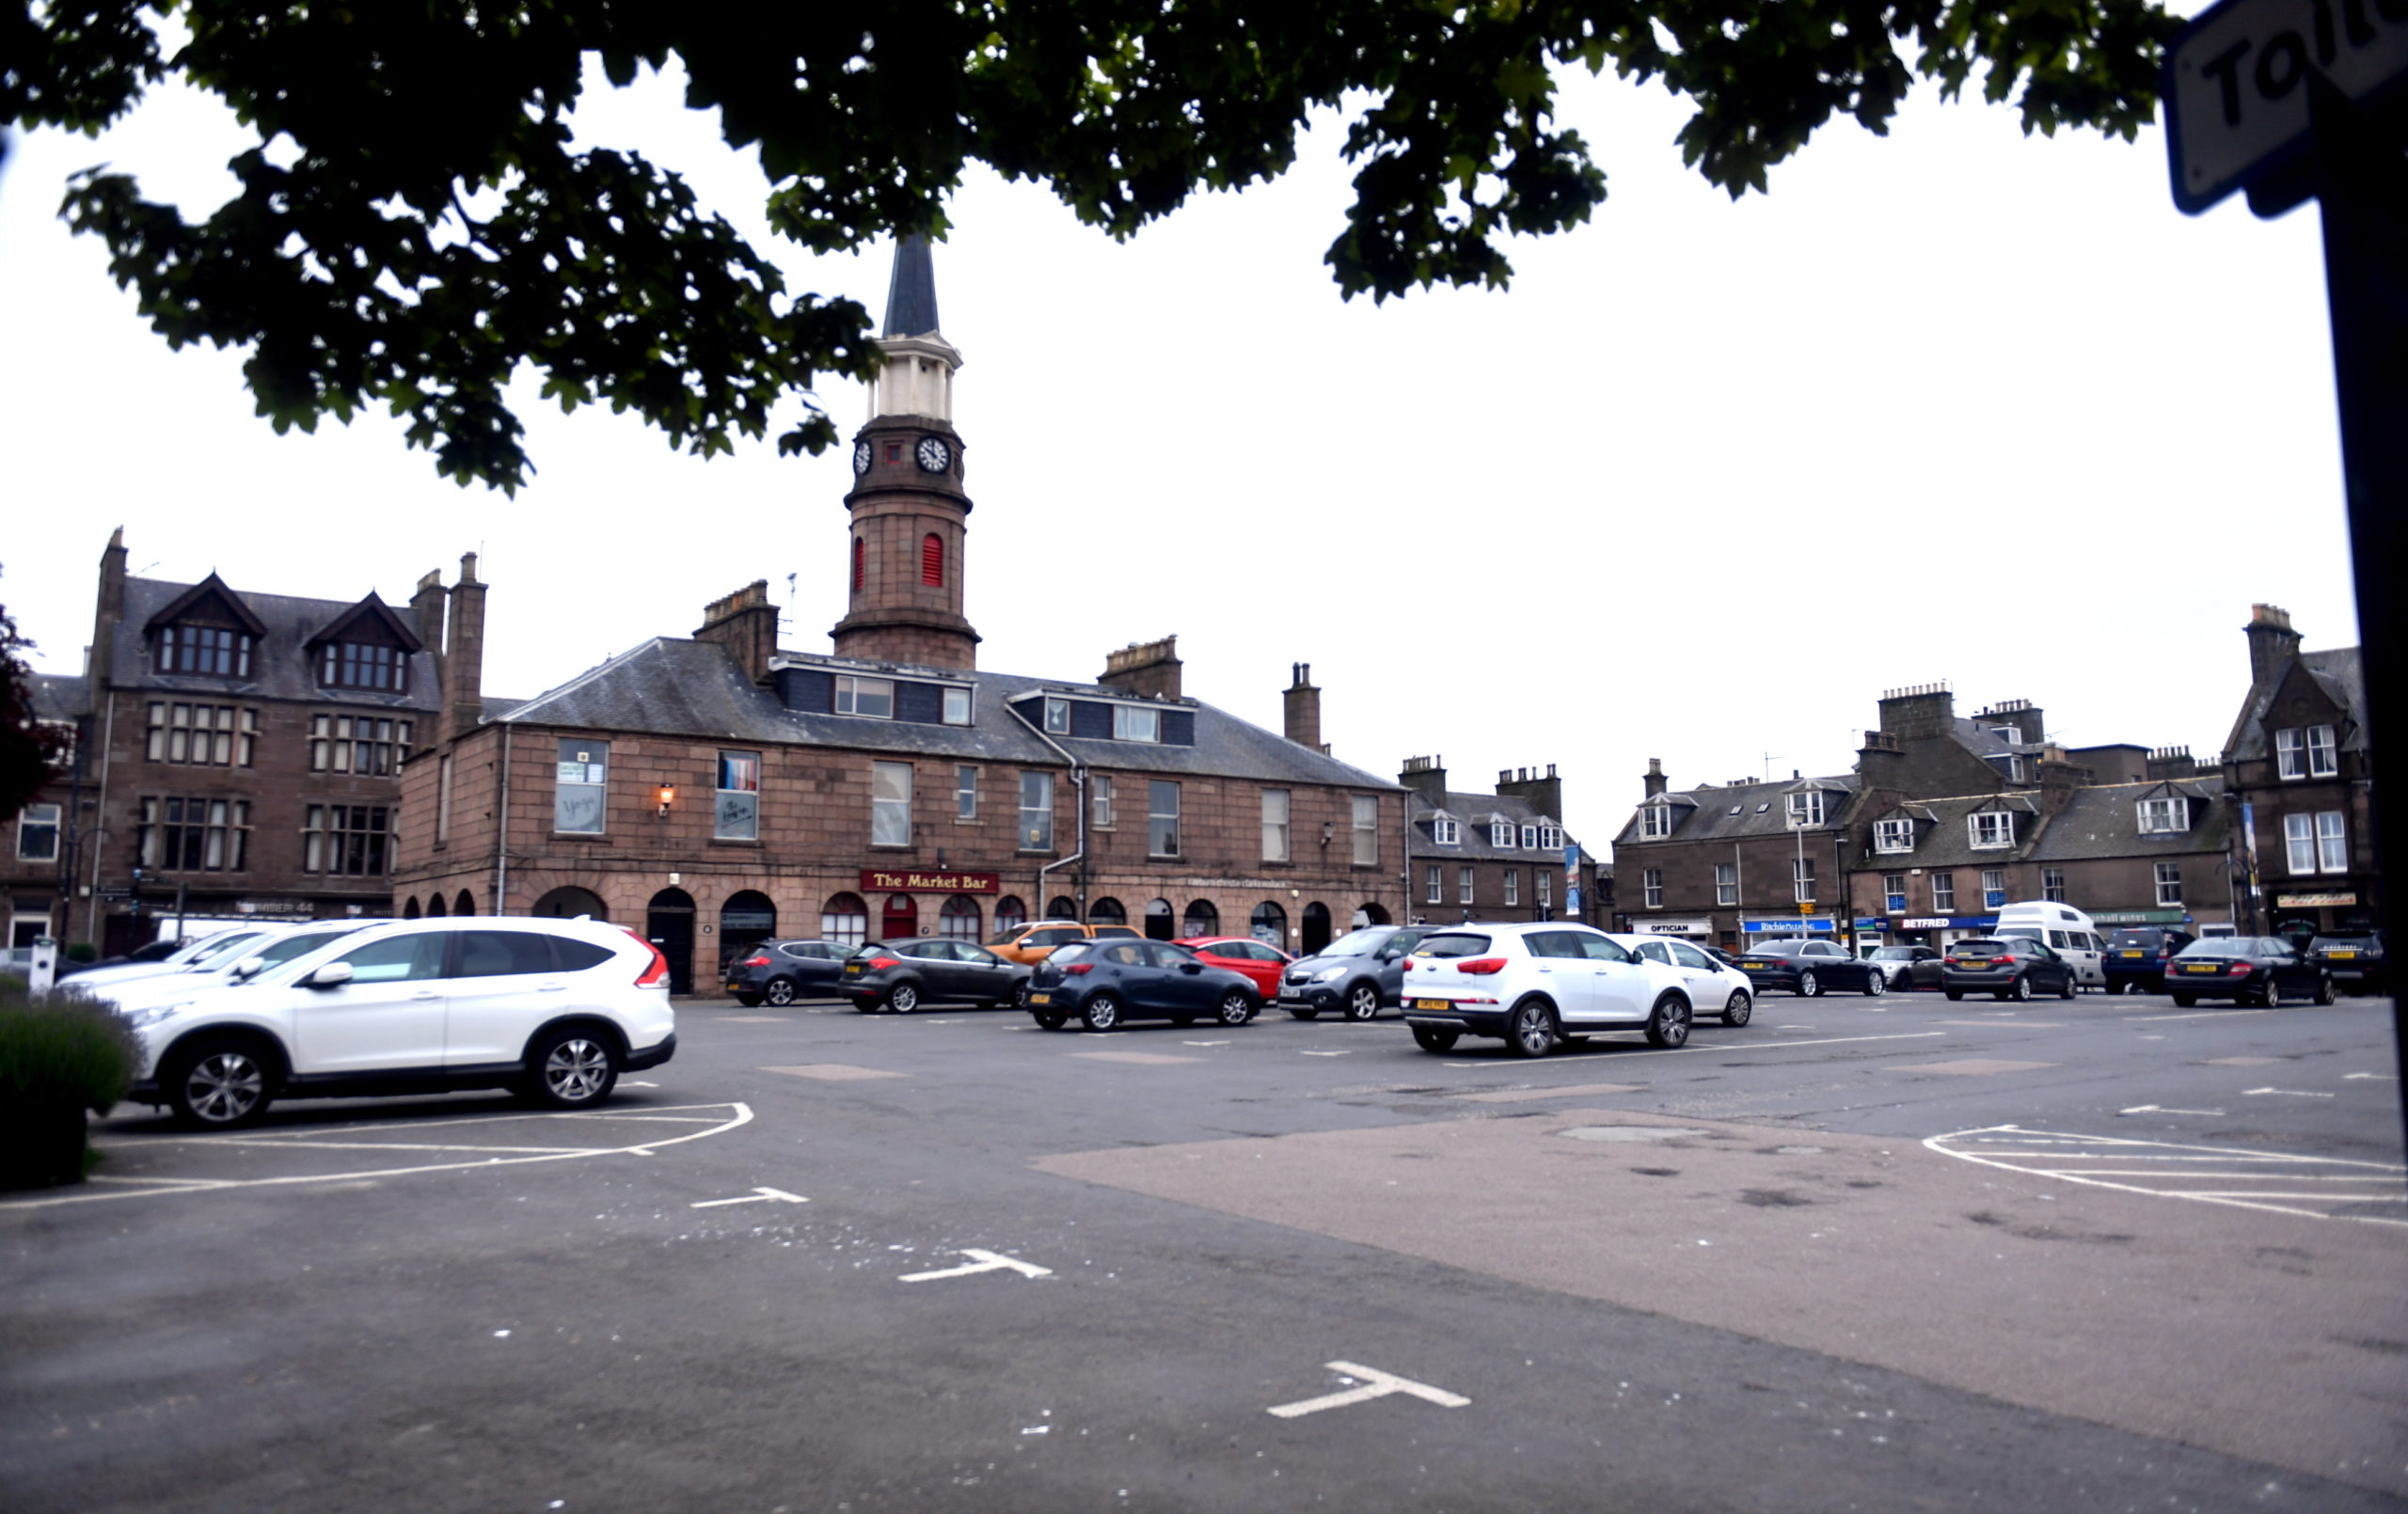 The Market Square car park in Stonehaven